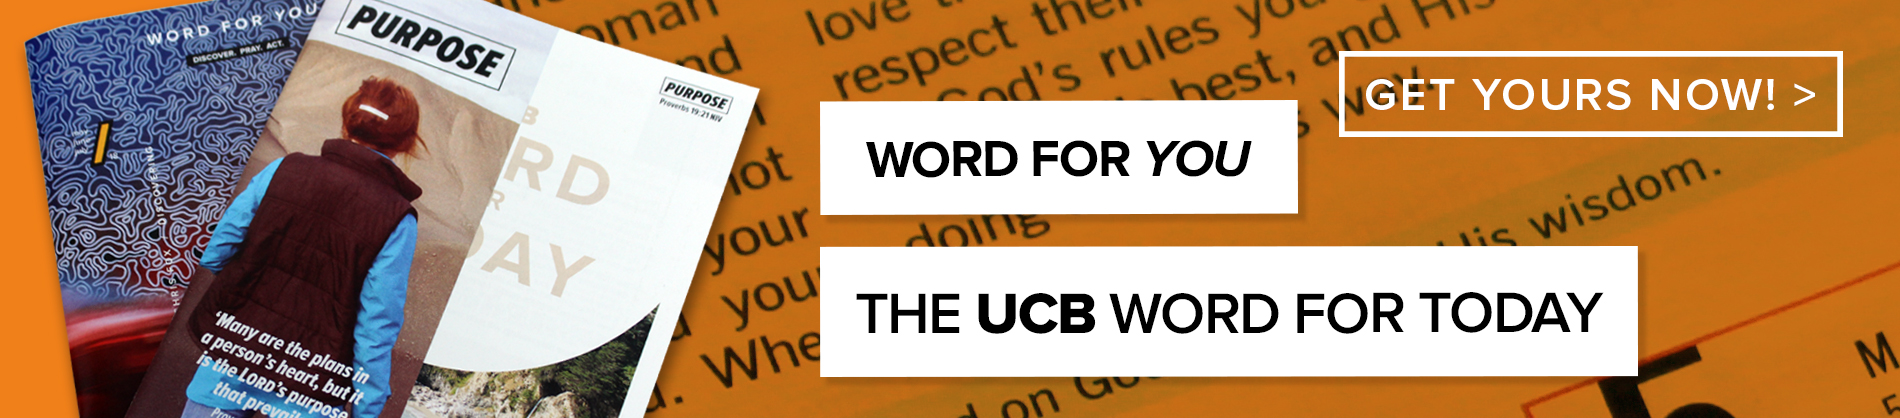 sign up for The UCB Word For Today or Word For You now!